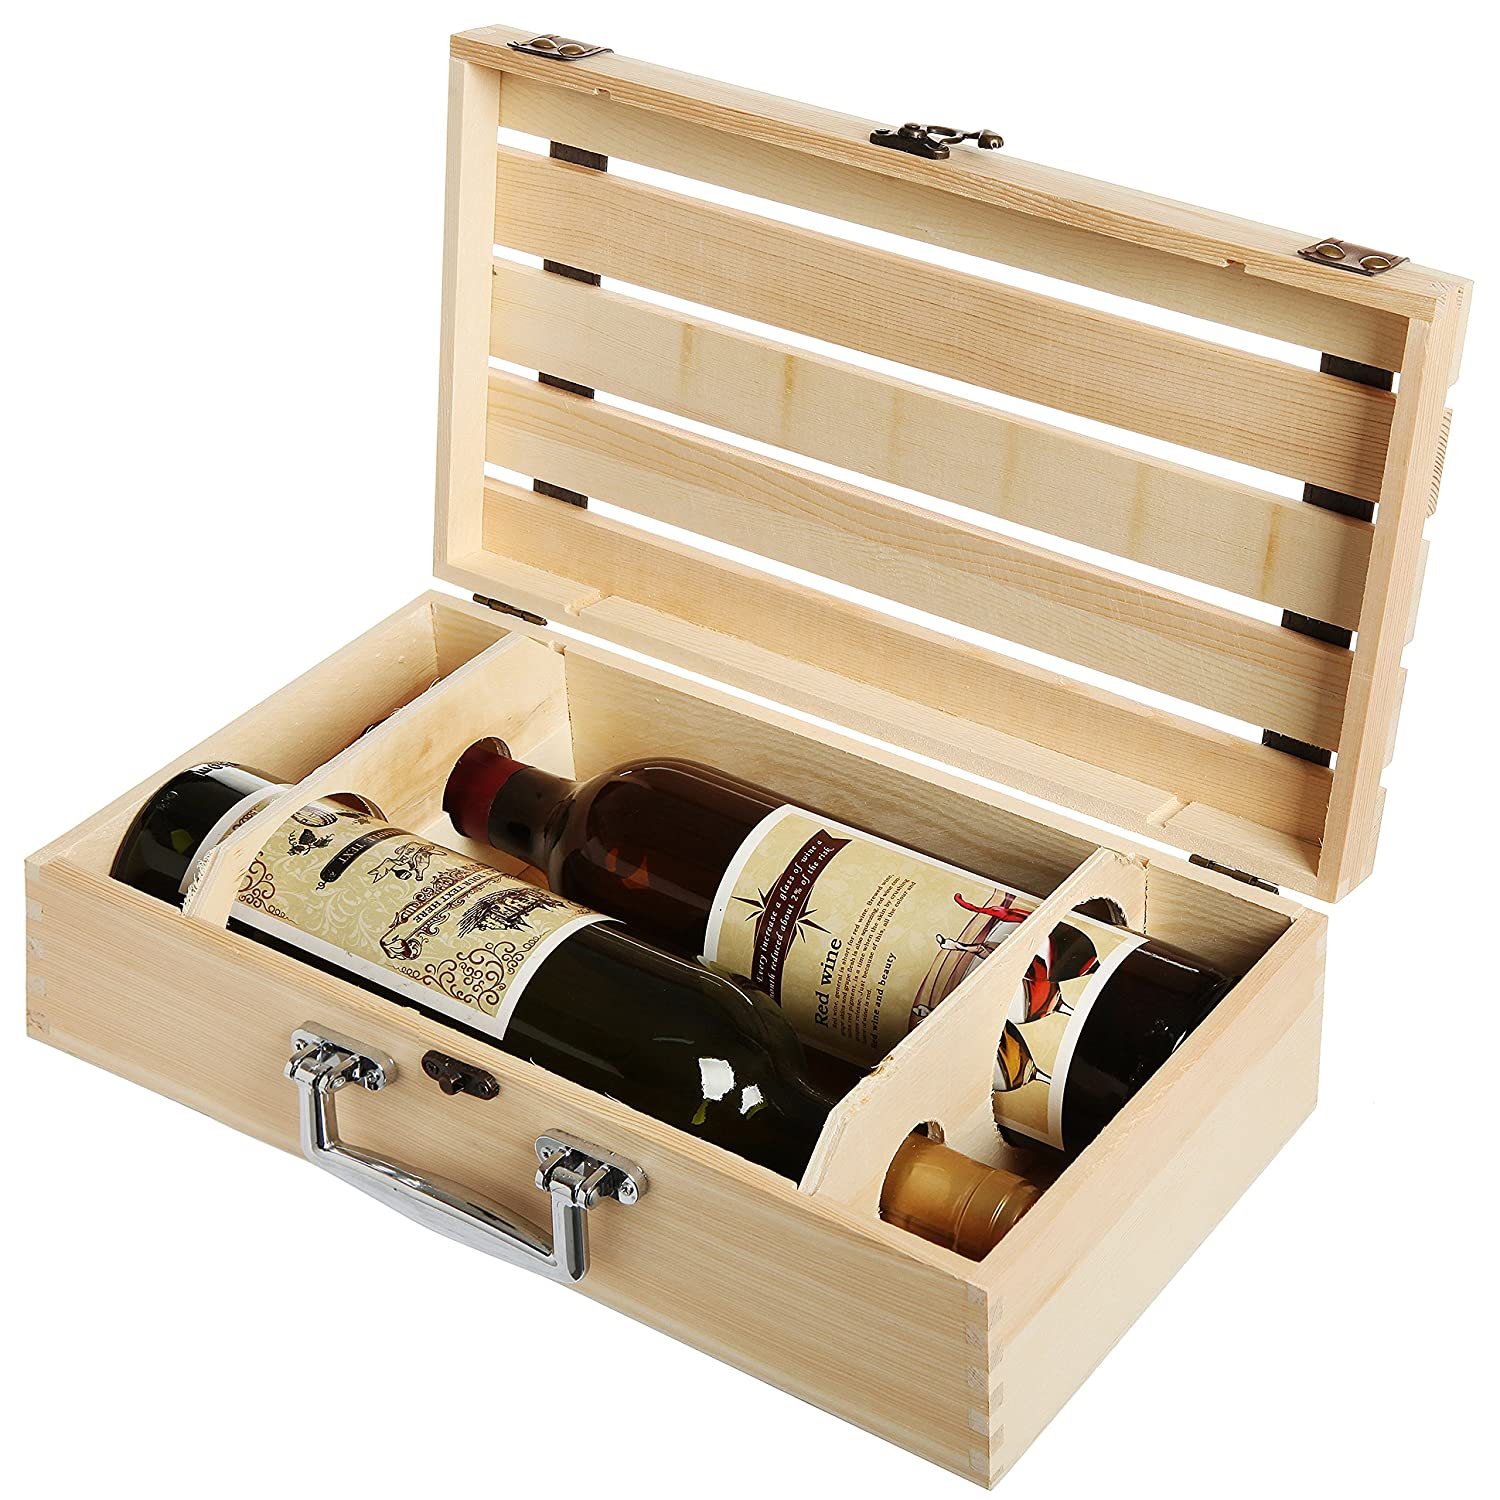 Mygift Handmade Vineyard Design Natural Pine Wood Crate 2 Wine Bottle Travel Storage Box Carrying Display Case